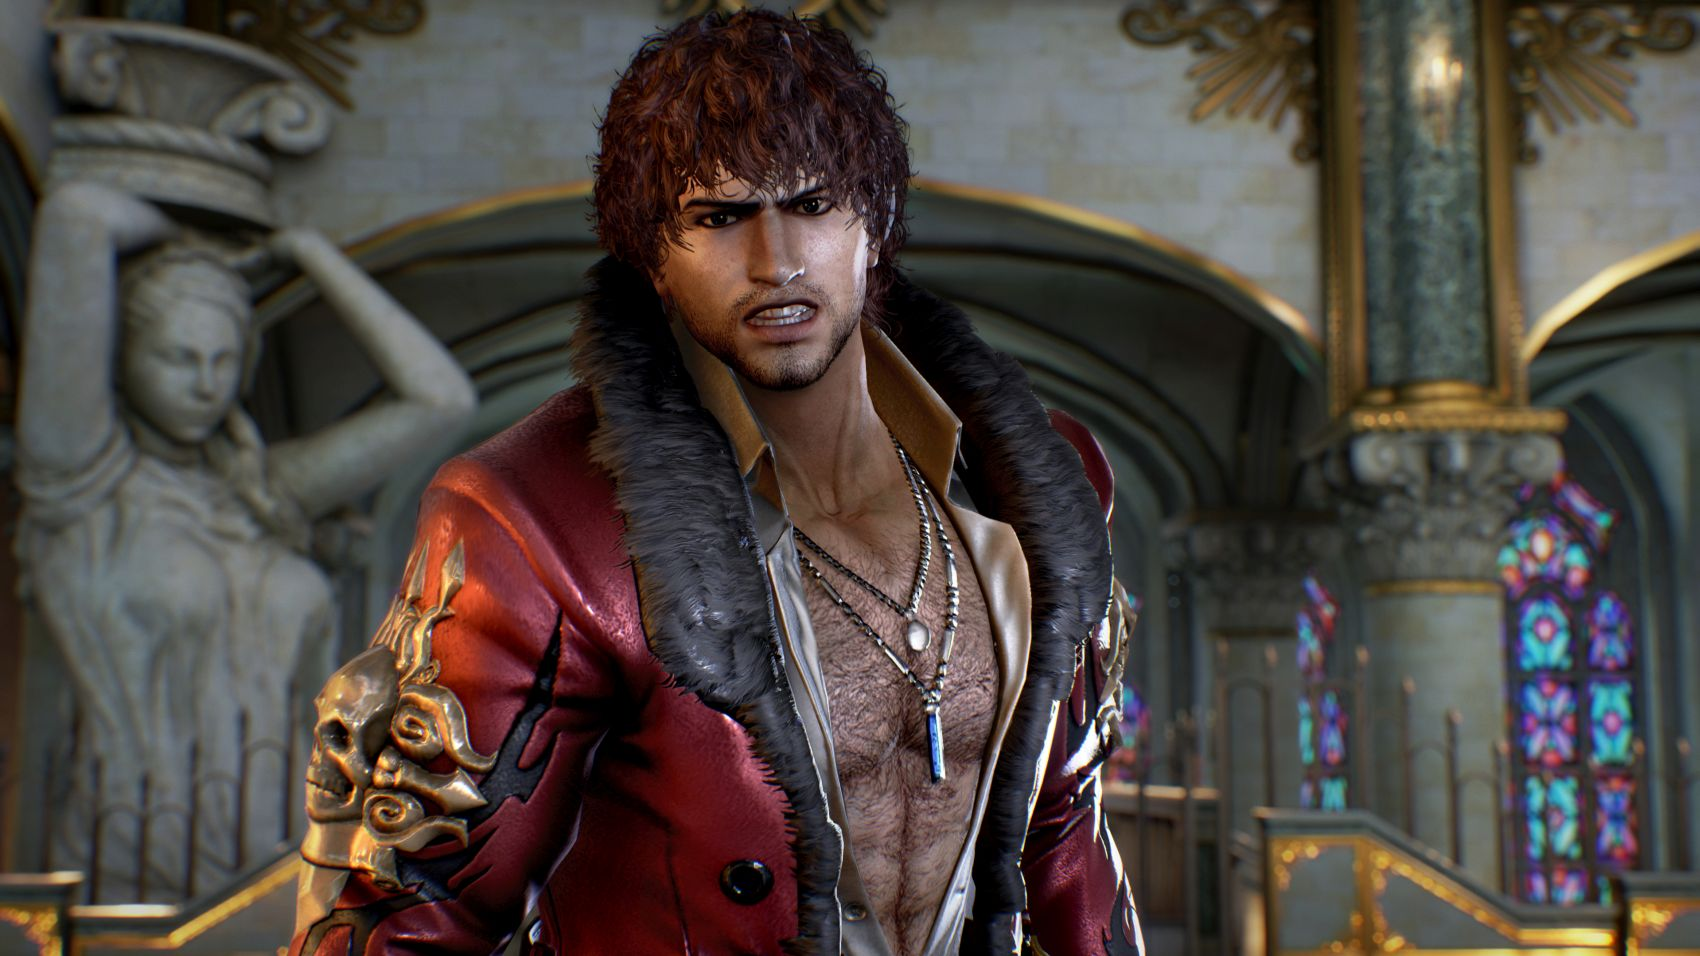 Tekken 7's tutorial is the story mode, because people don't play tutorials